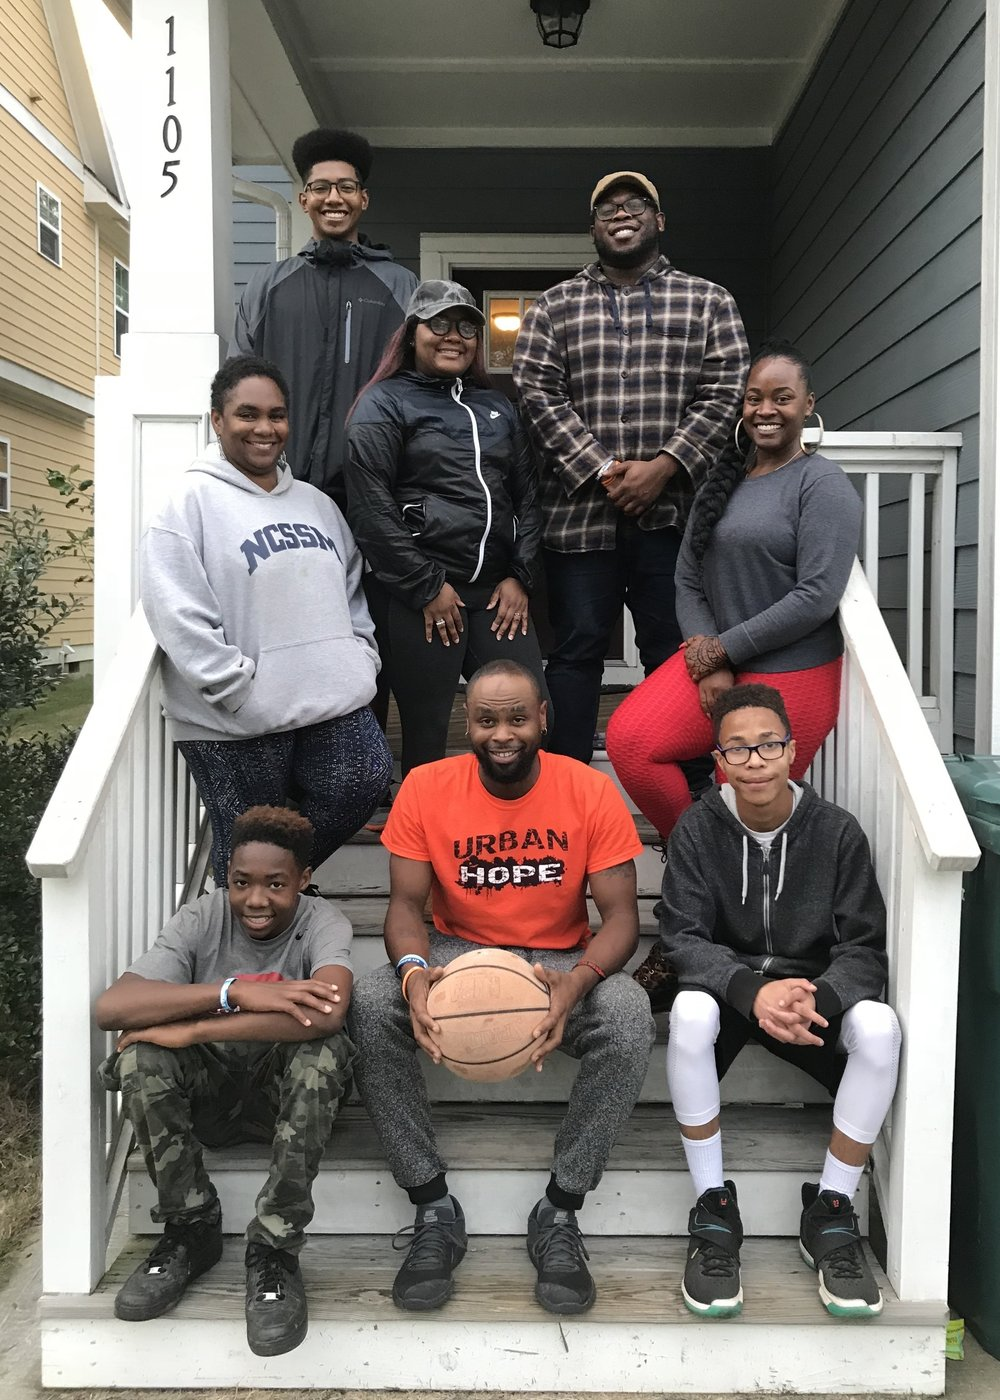 Robert (top right), Jennifer (far right), and Isaiah (ball in hand) outside of The Alexander House with a spiritual mentor, other young adult leaders and neighborhood youth